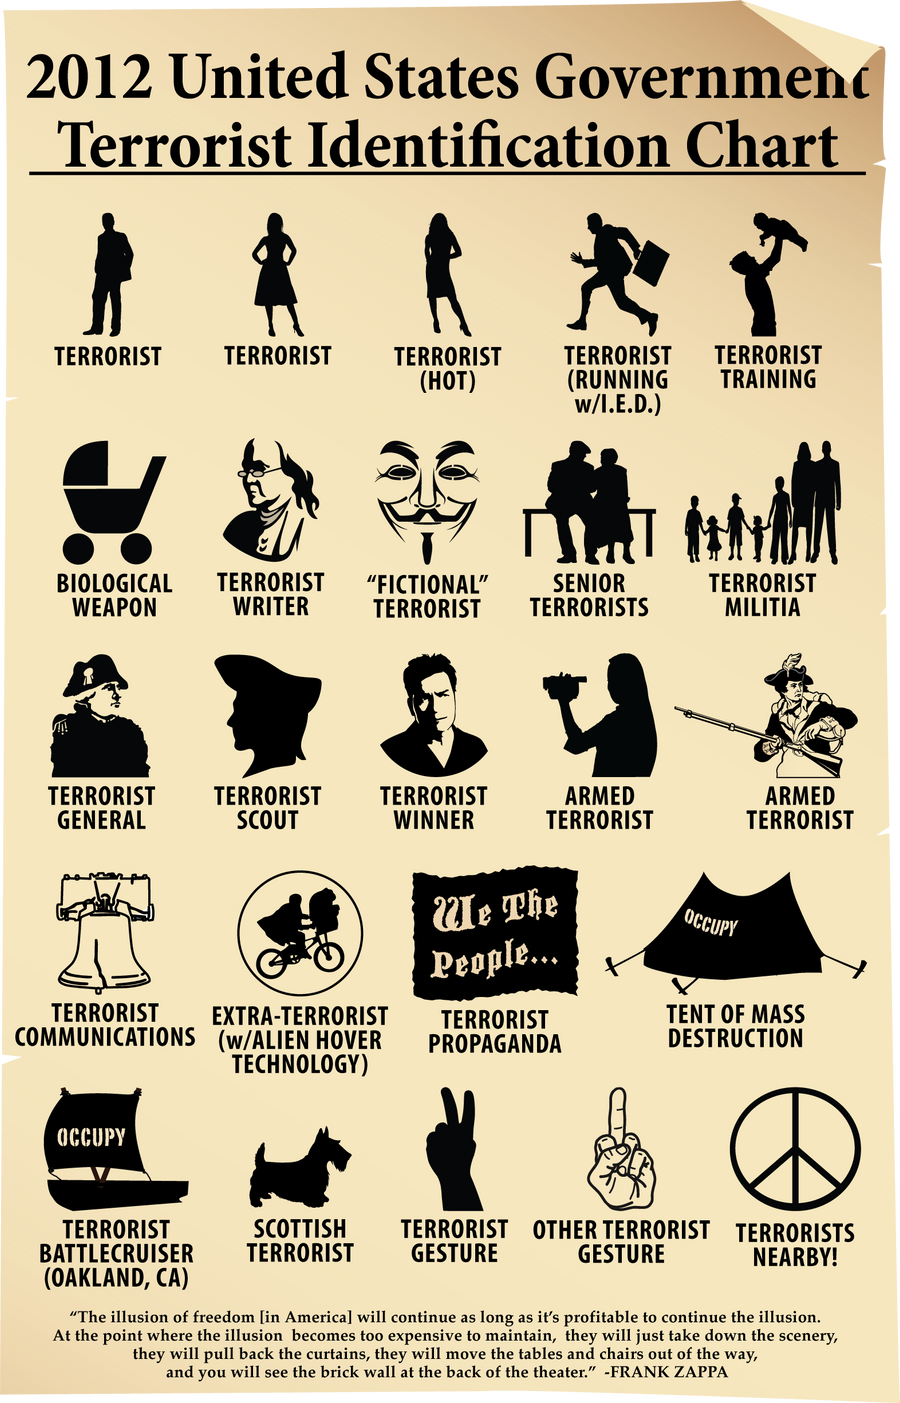 2012 US Terrorist Identification Chart by gonzoville